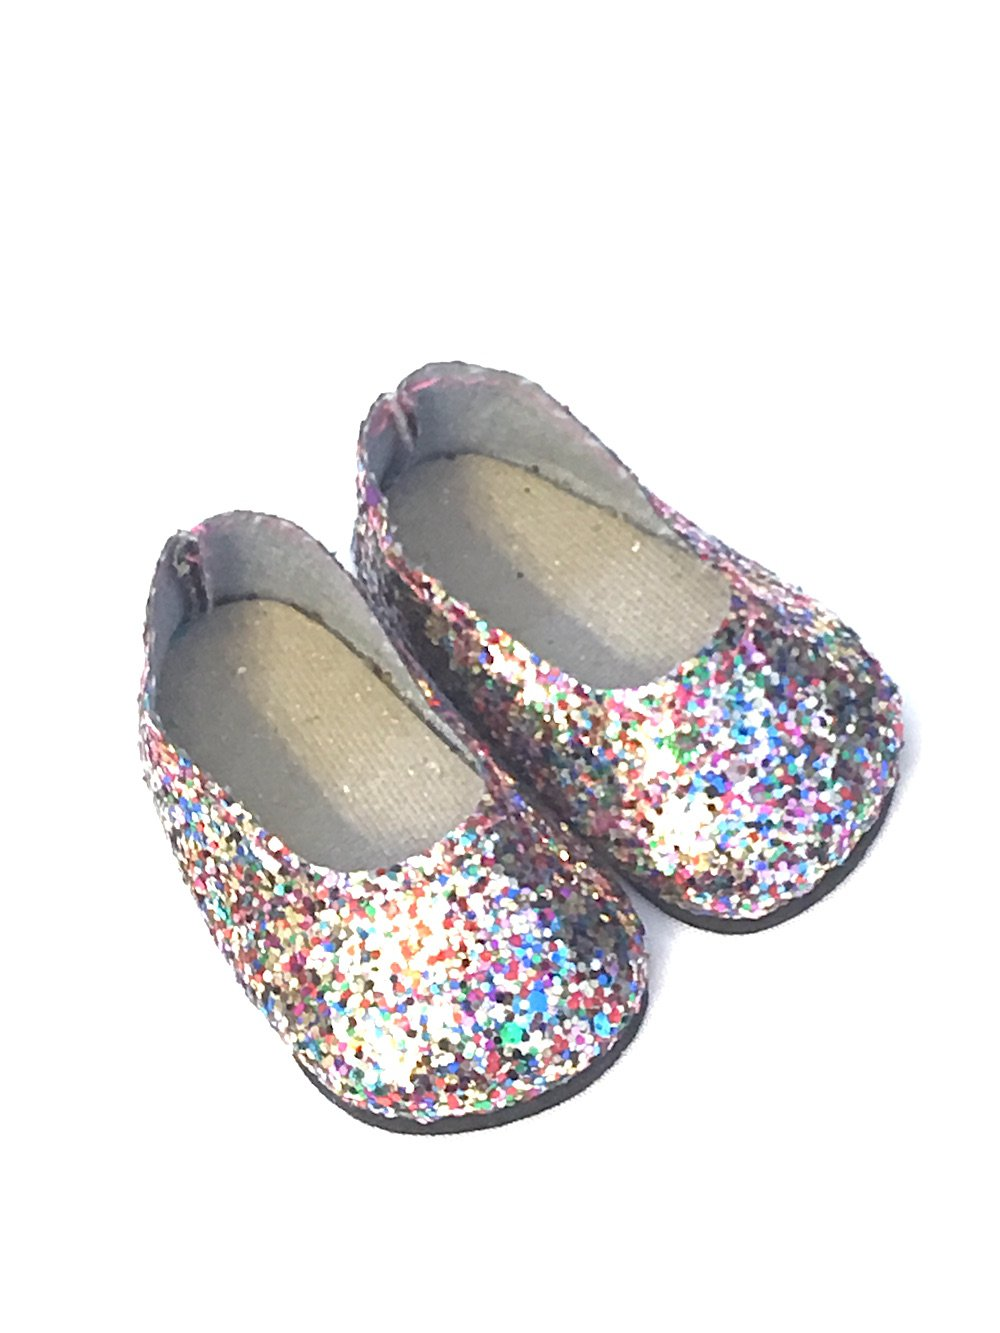 Shoes Limited Edition 18 inch Doll Clothes Accessories Various 2 Piece Sundress Set with Sparkle Shoes and Fits American Girl Dolls and Other 18 inch Dolls